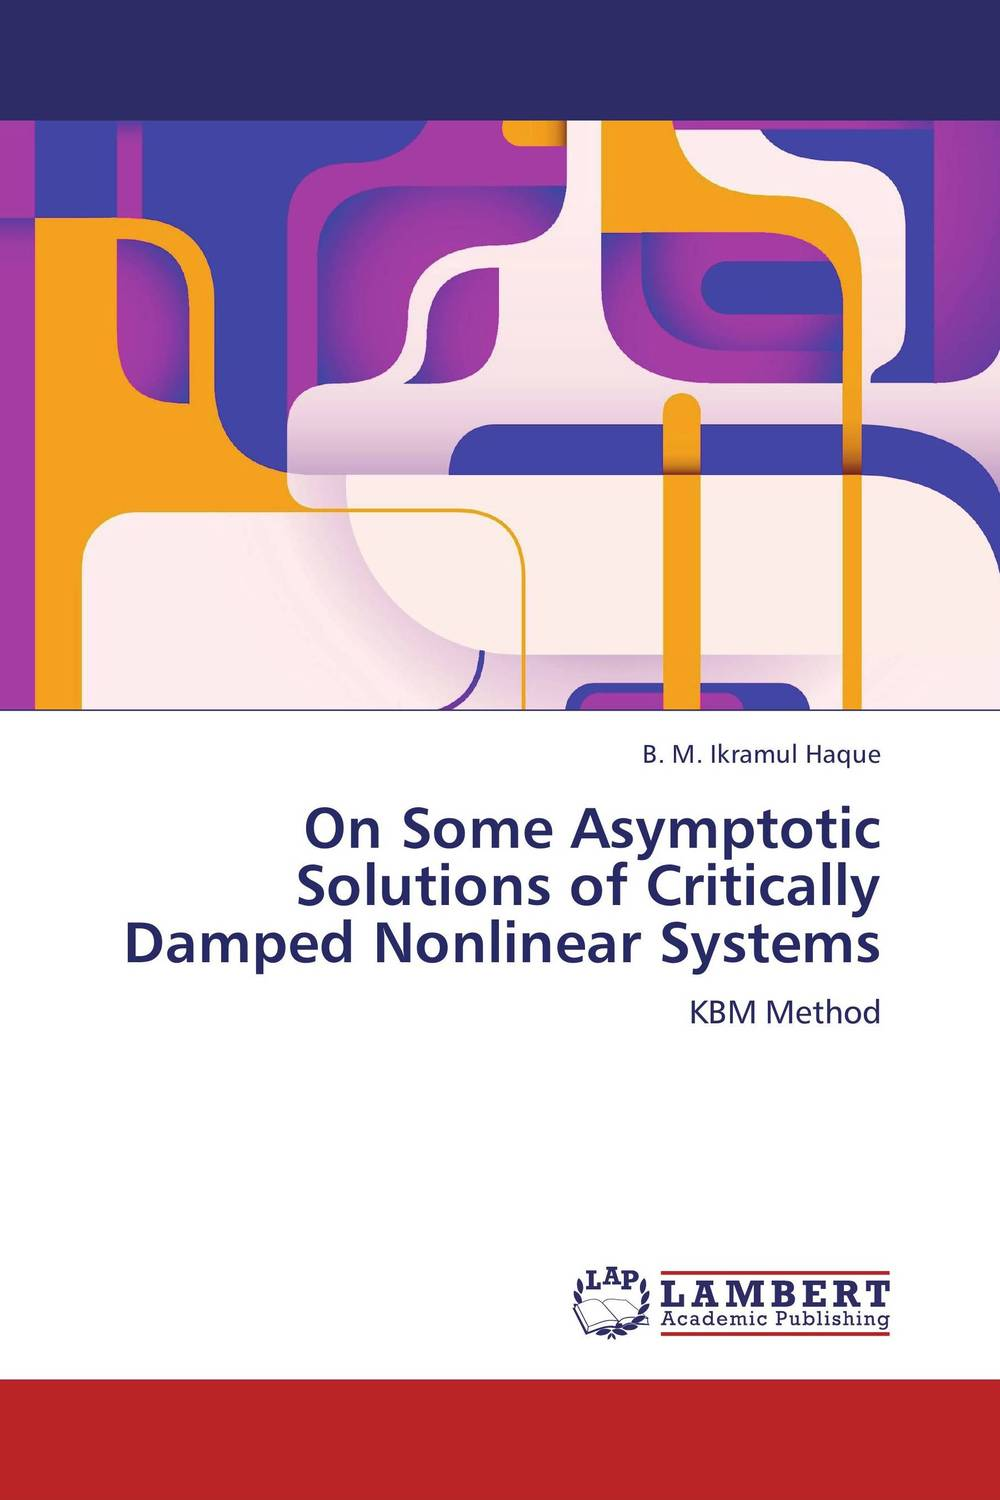 On Some Asymptotic Solutions of Critically Damped Nonlinear Systems symmetries and exact solutions for nonlinear systems